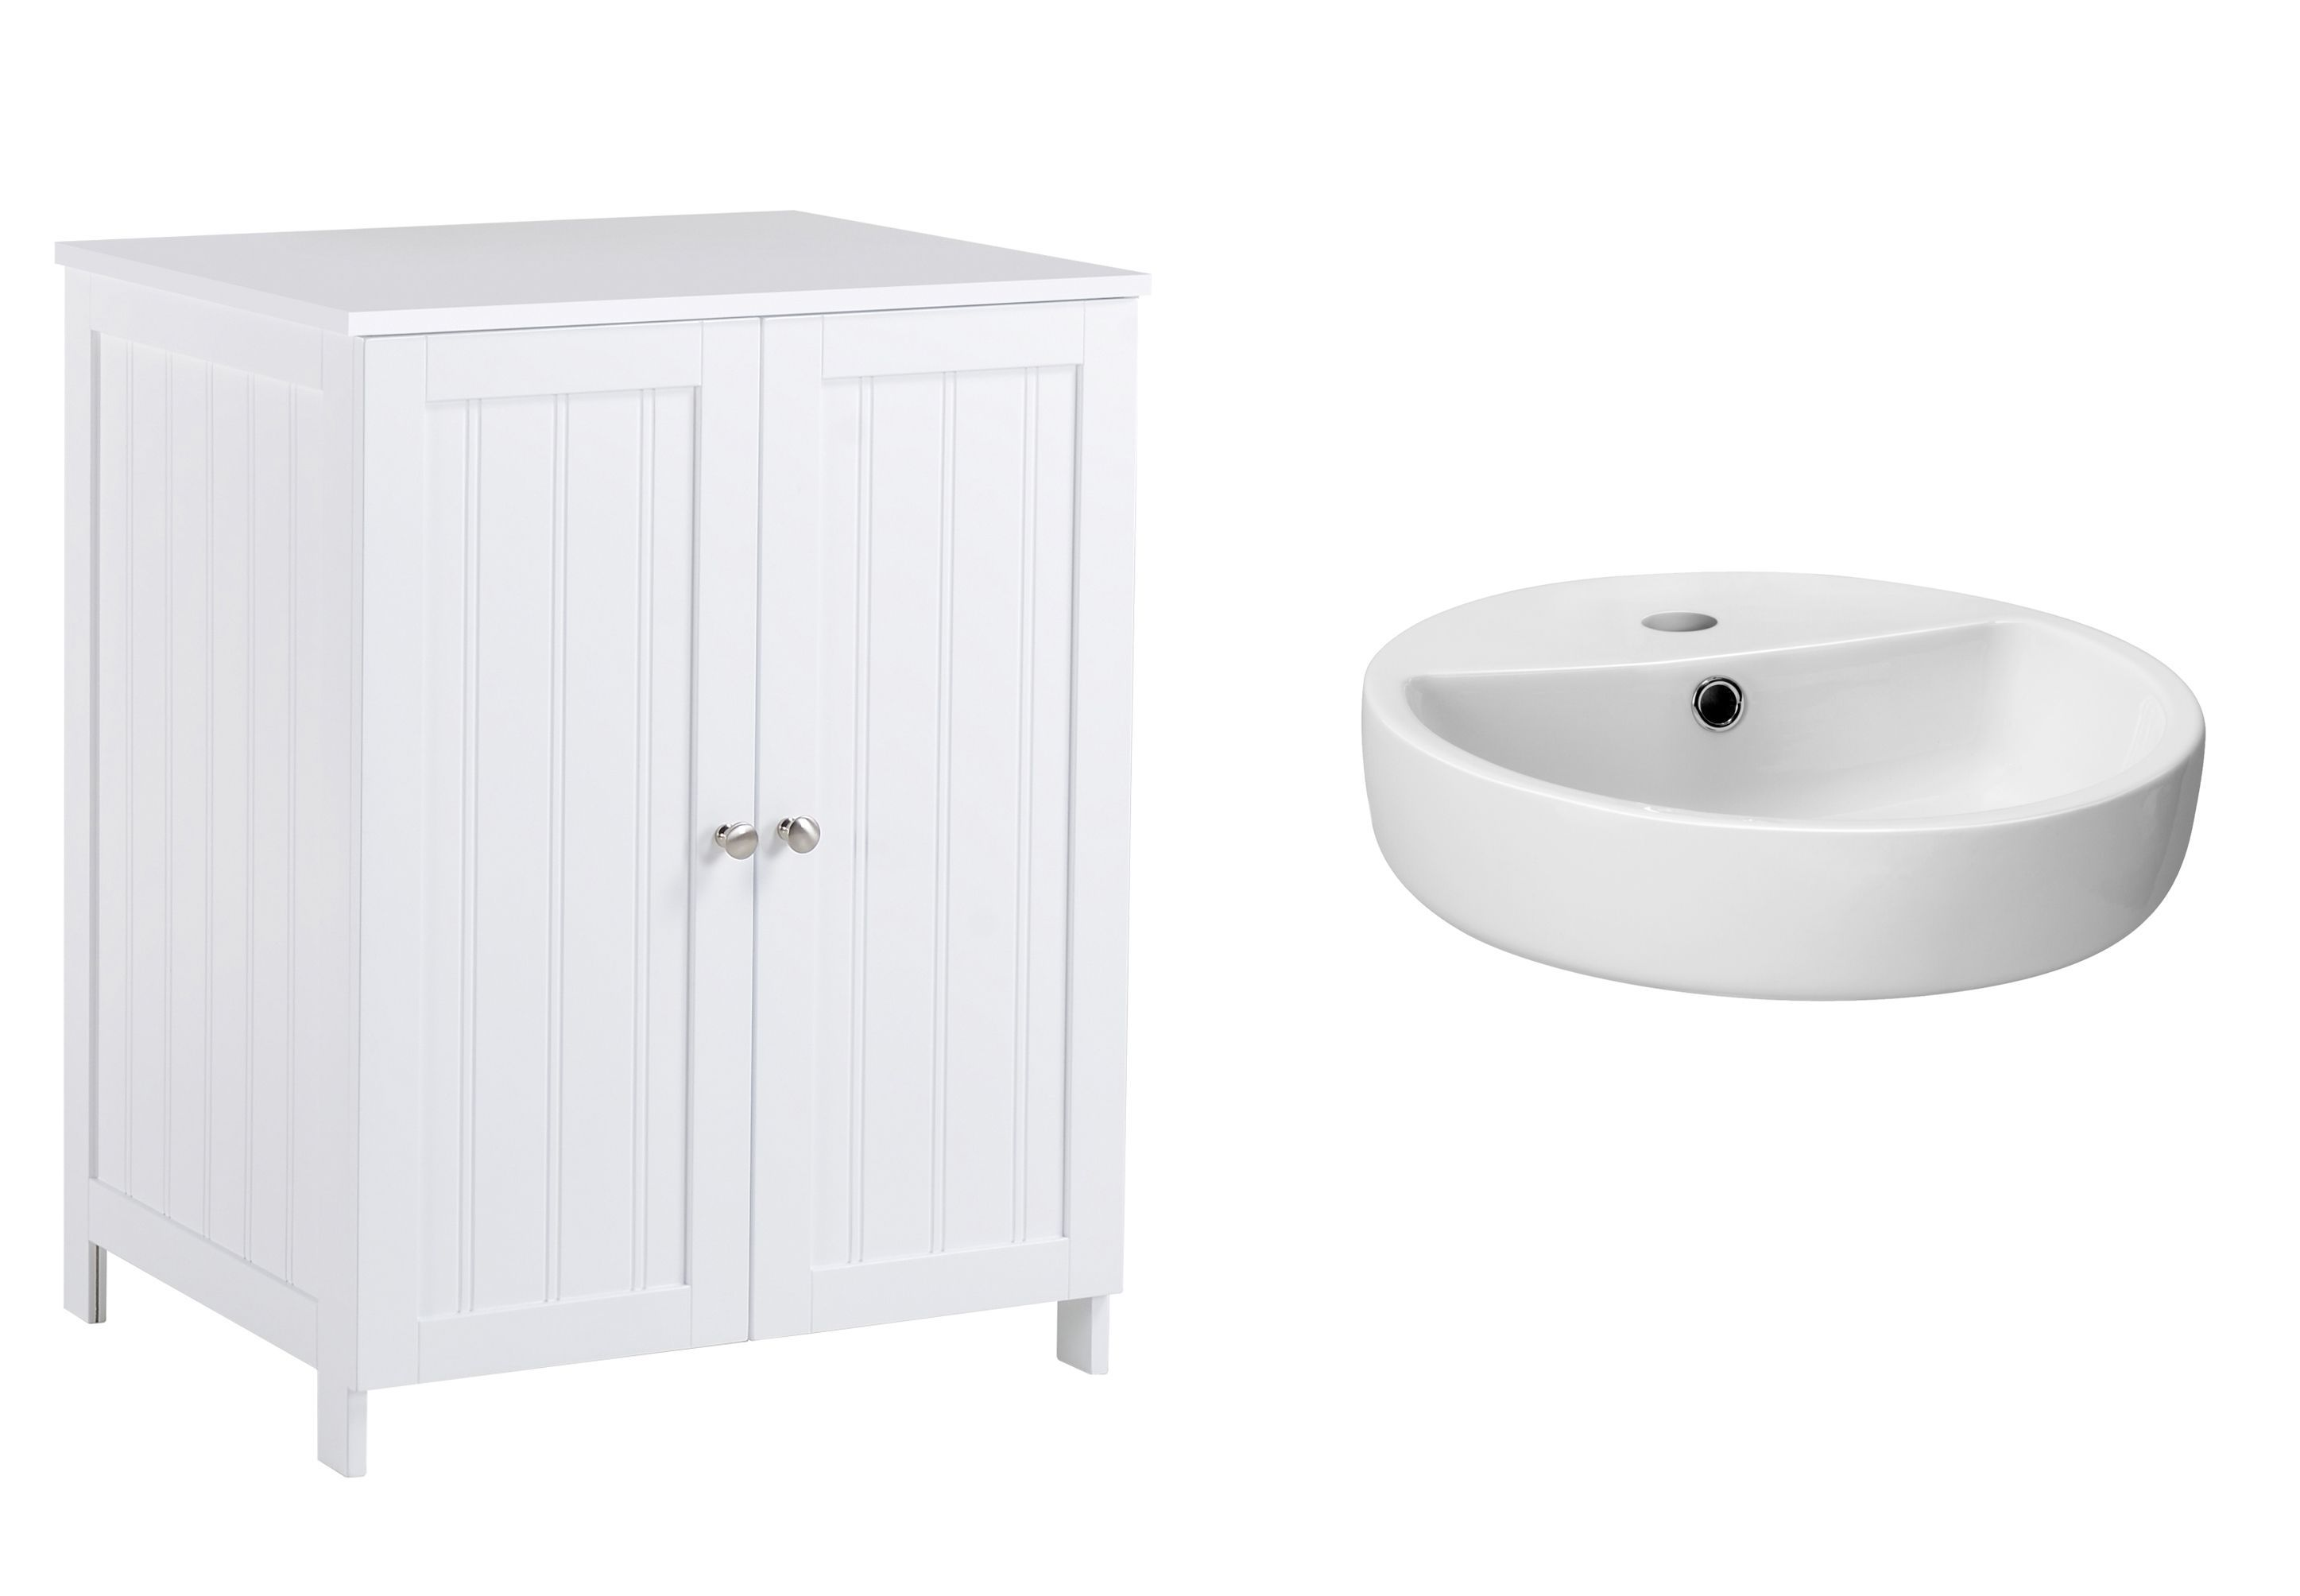 Bathroom Cabinets Uk Bq Nicolina White Vanity Unit Basin Set Departments Diy At Bq